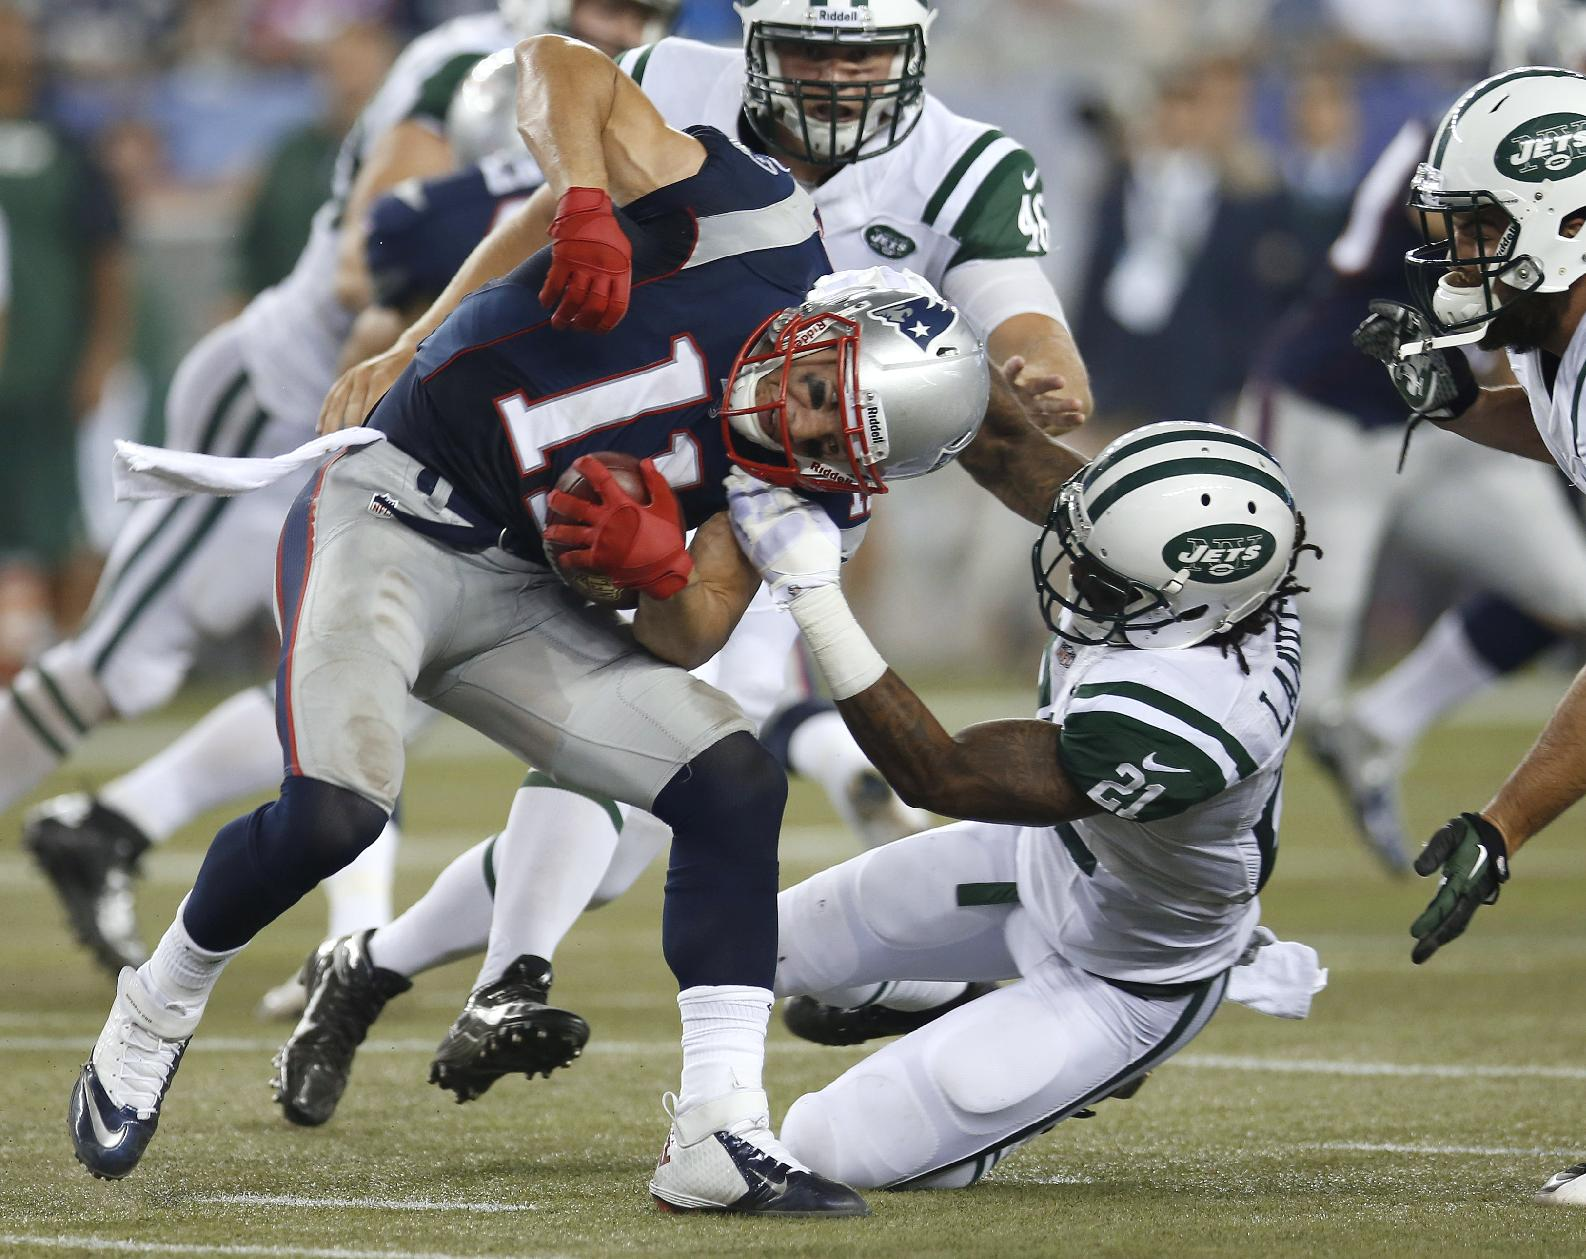 New York Jets defensive back Ellis Lankster (21) tries to tackle New England Patriots wide receiver Julian Edelman (11) during the second quarter of an NFL football game Thursday, Sept. 12, 2013, in Foxborough, Mass